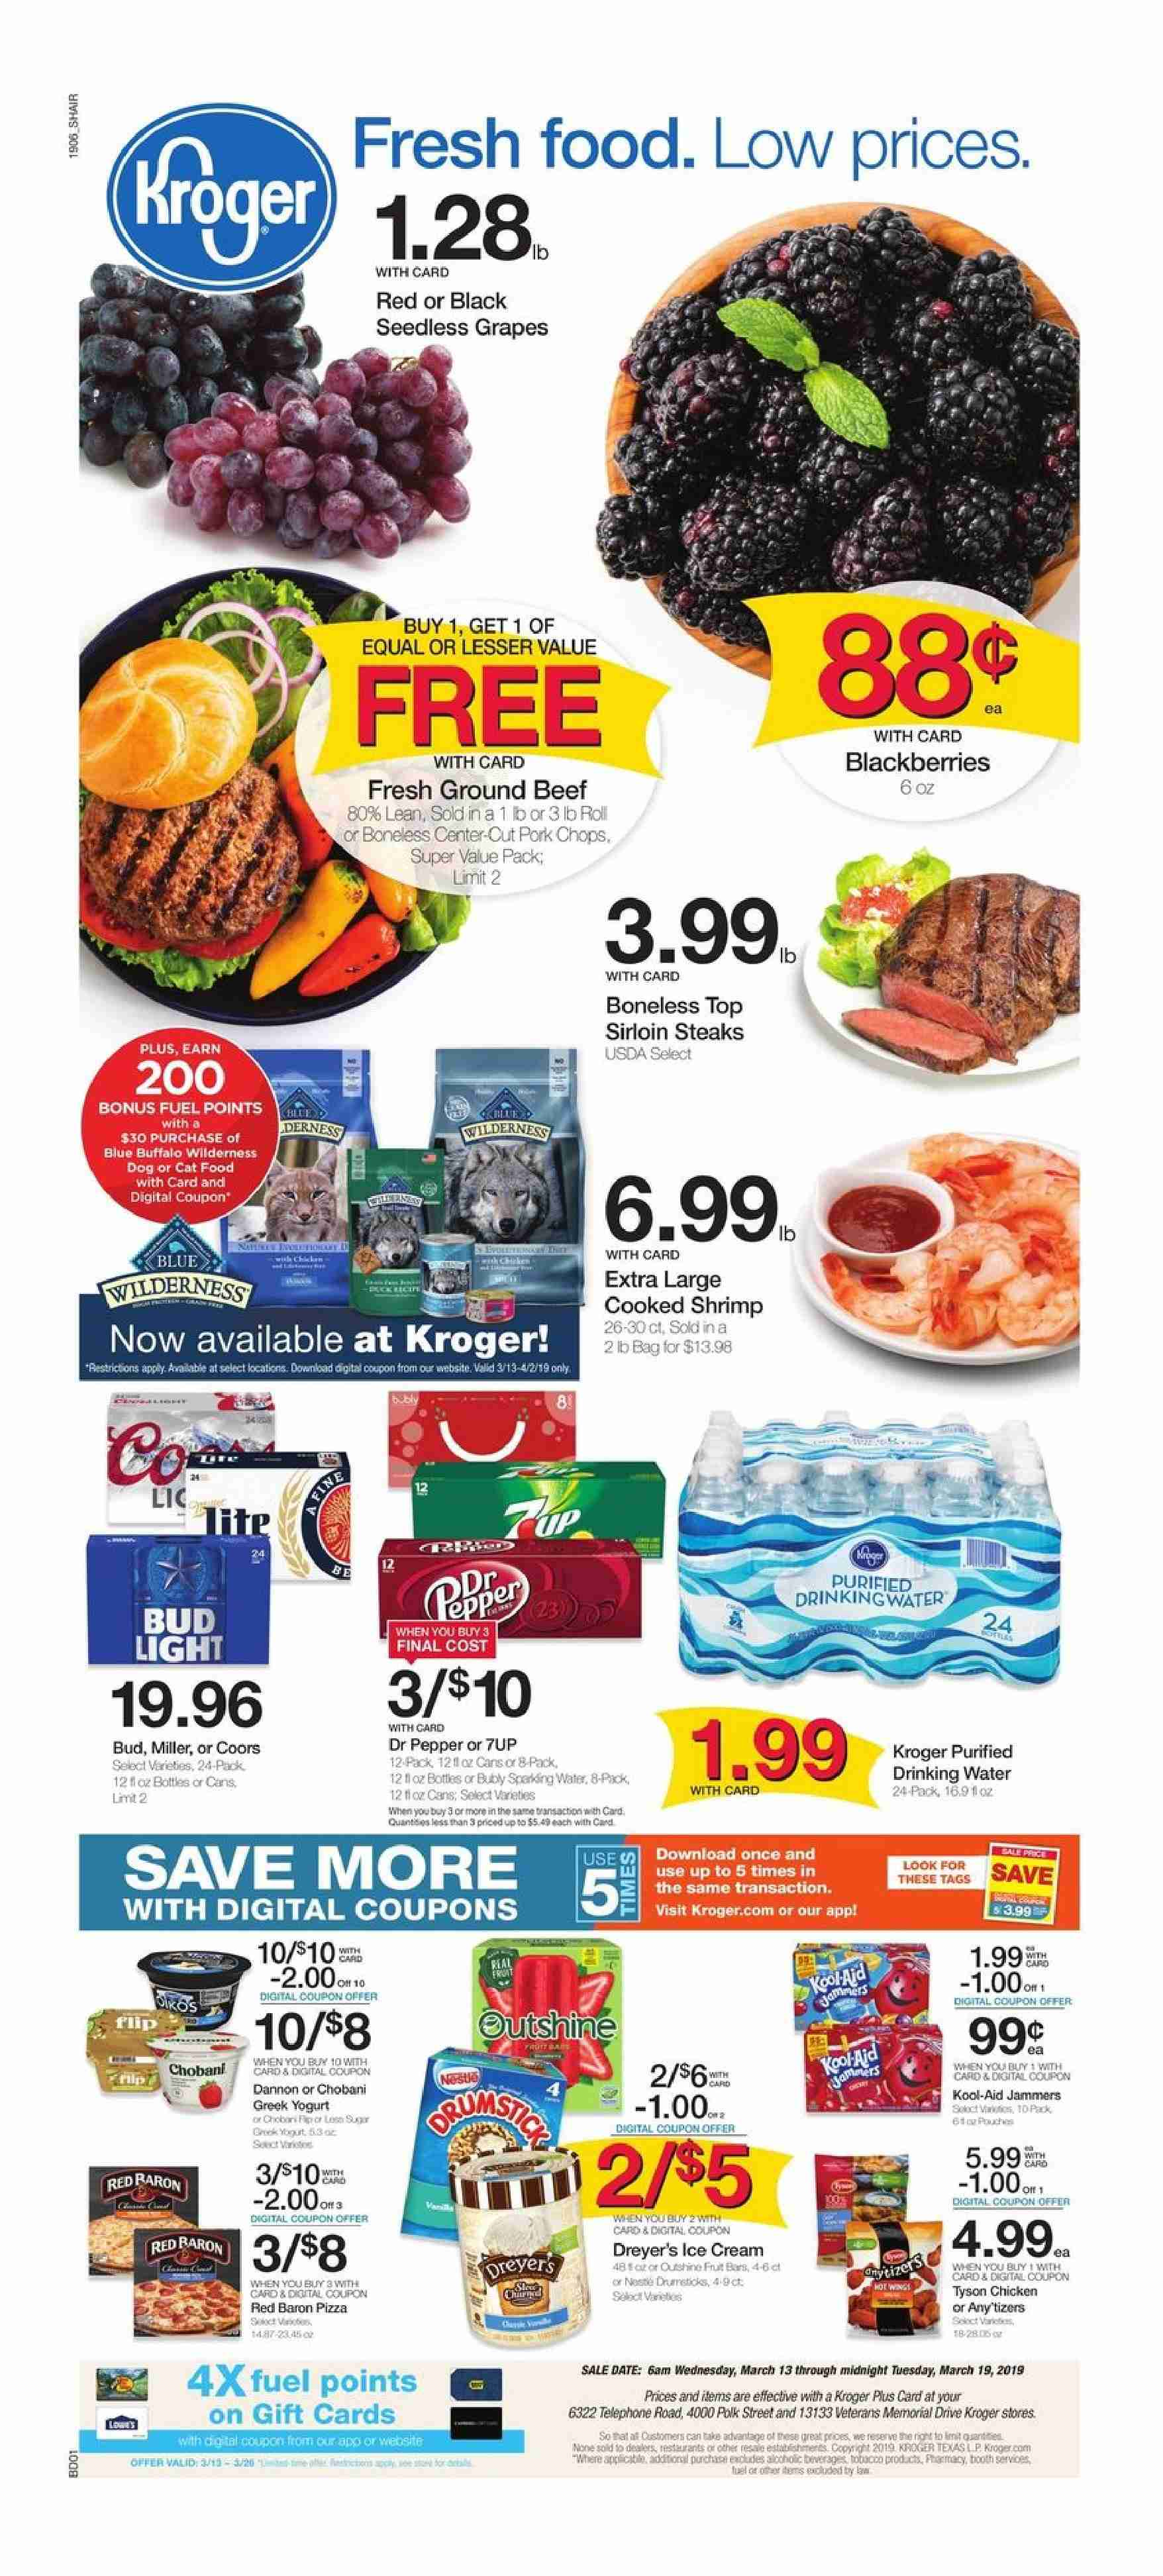 Kroger Flyer - 03.13.2019 - 03.19.2019 - Sales products - bag, beef meat, blackberries, blue buffalo, fuel, grapes, greek yogurt, ground beef, seedless grapes, shrimp, yogurt, hat, ice cream, pizza, polk, pork chops, pork meat, chicken, drinking water, pepper, bud light, miller, coors, dr. pepper. Page 1.